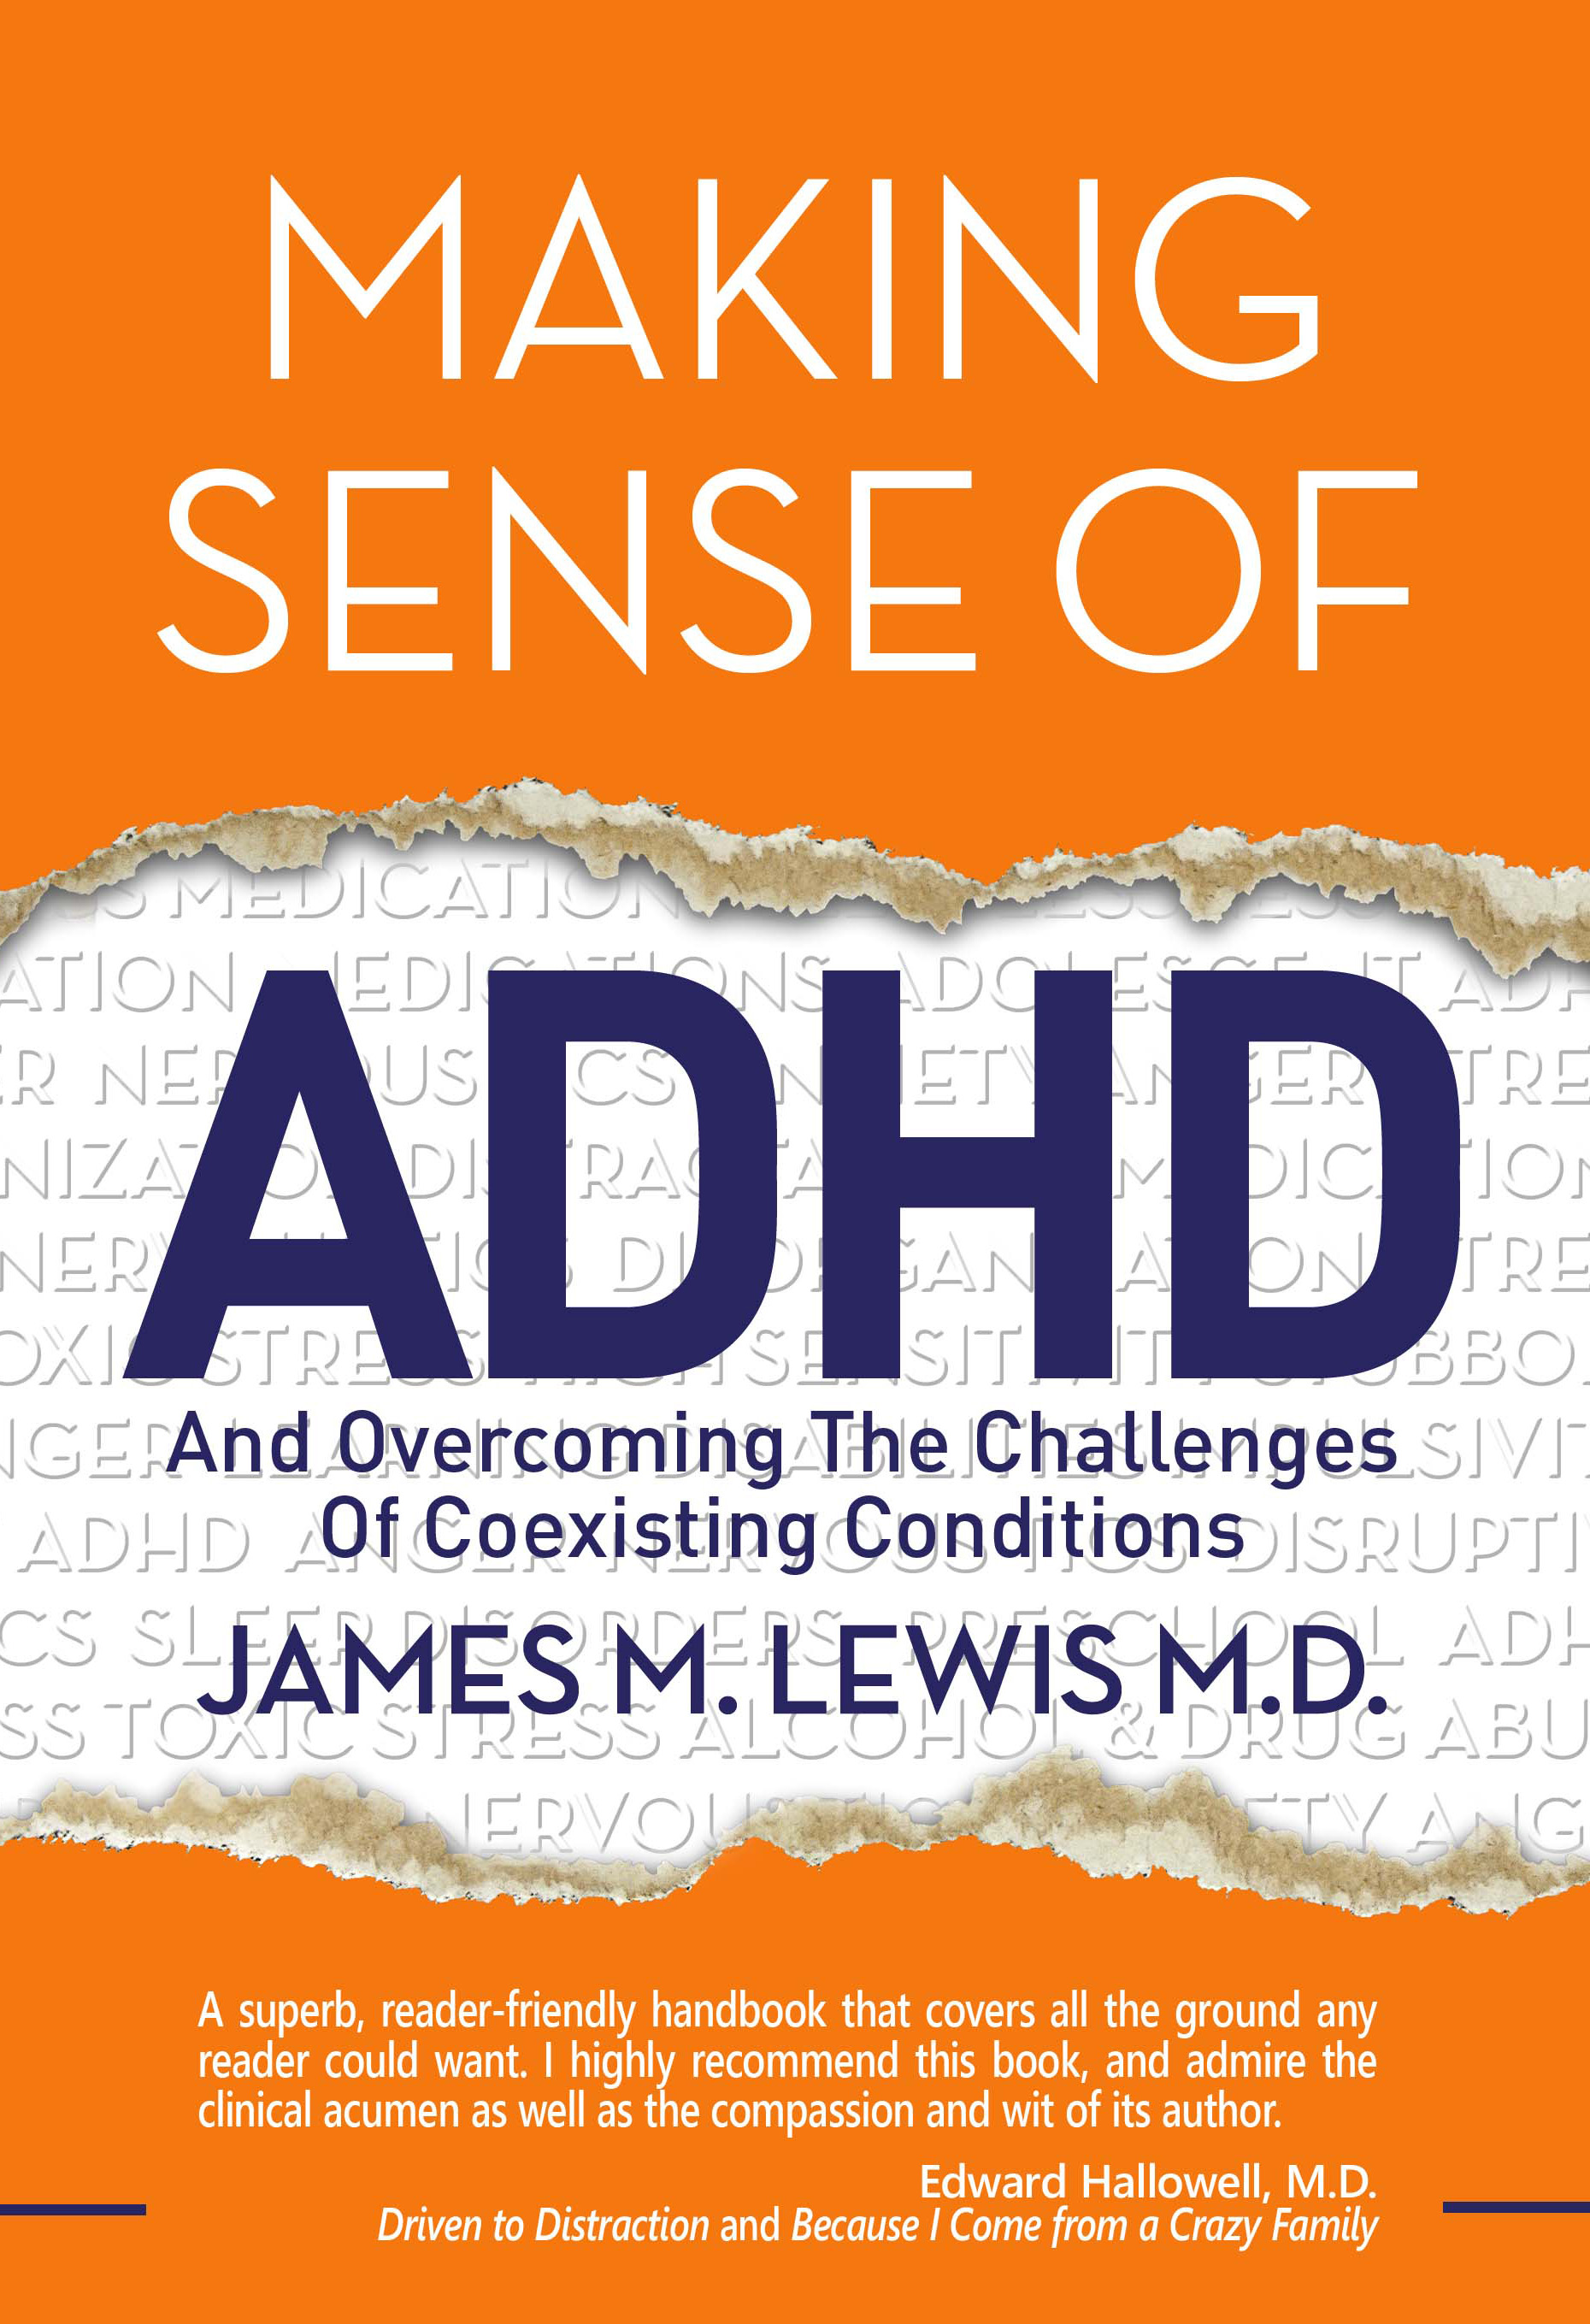 Making Sense of ADHD